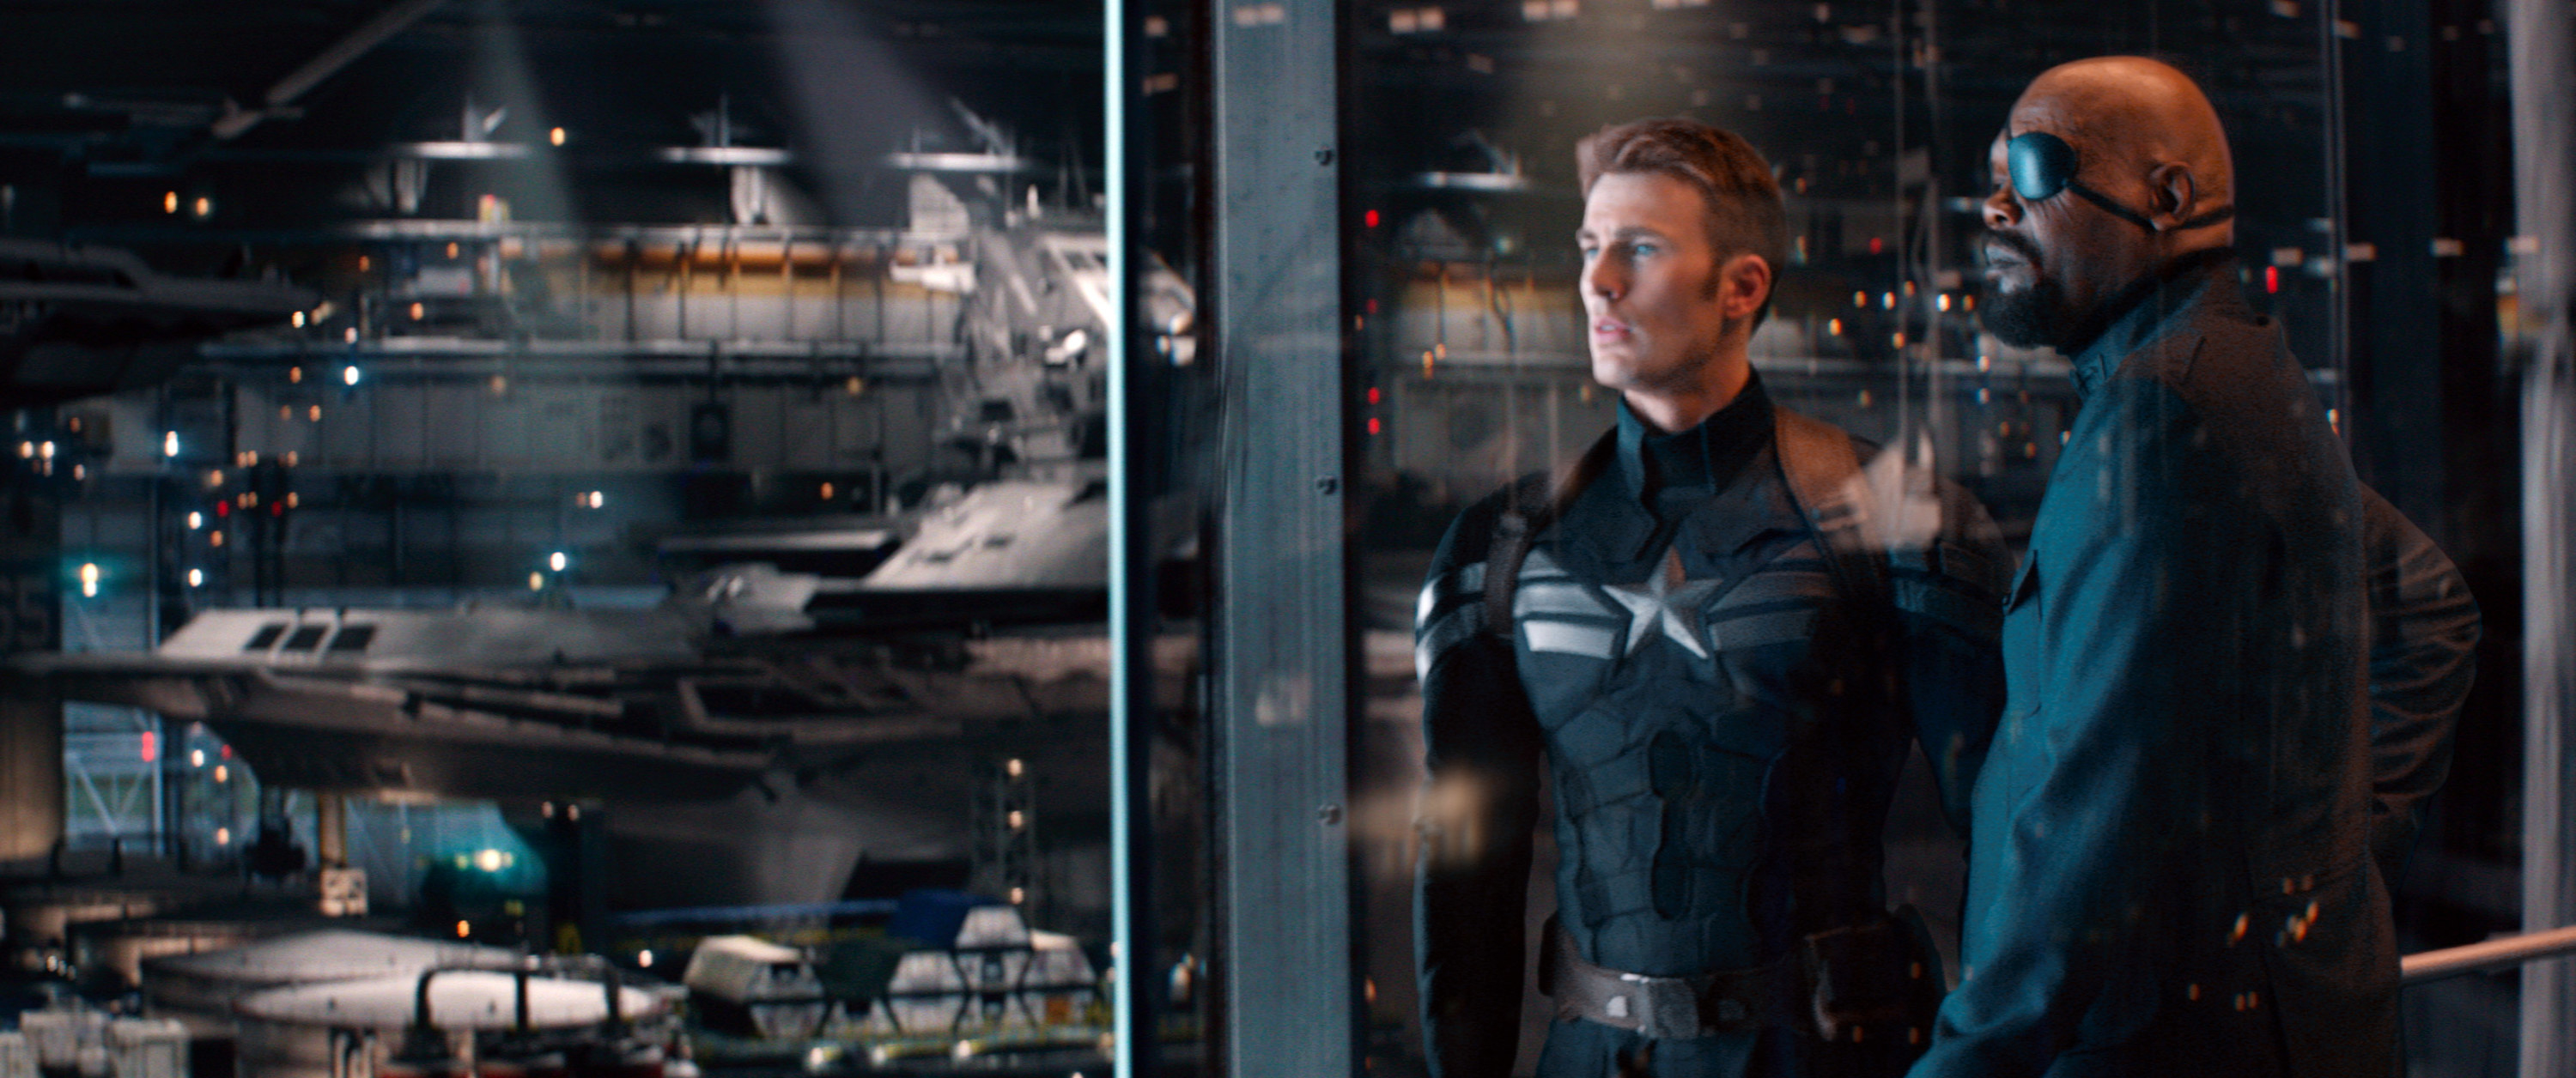 Captain America and Nick Fury look at SHIELD's collection of fighter jets